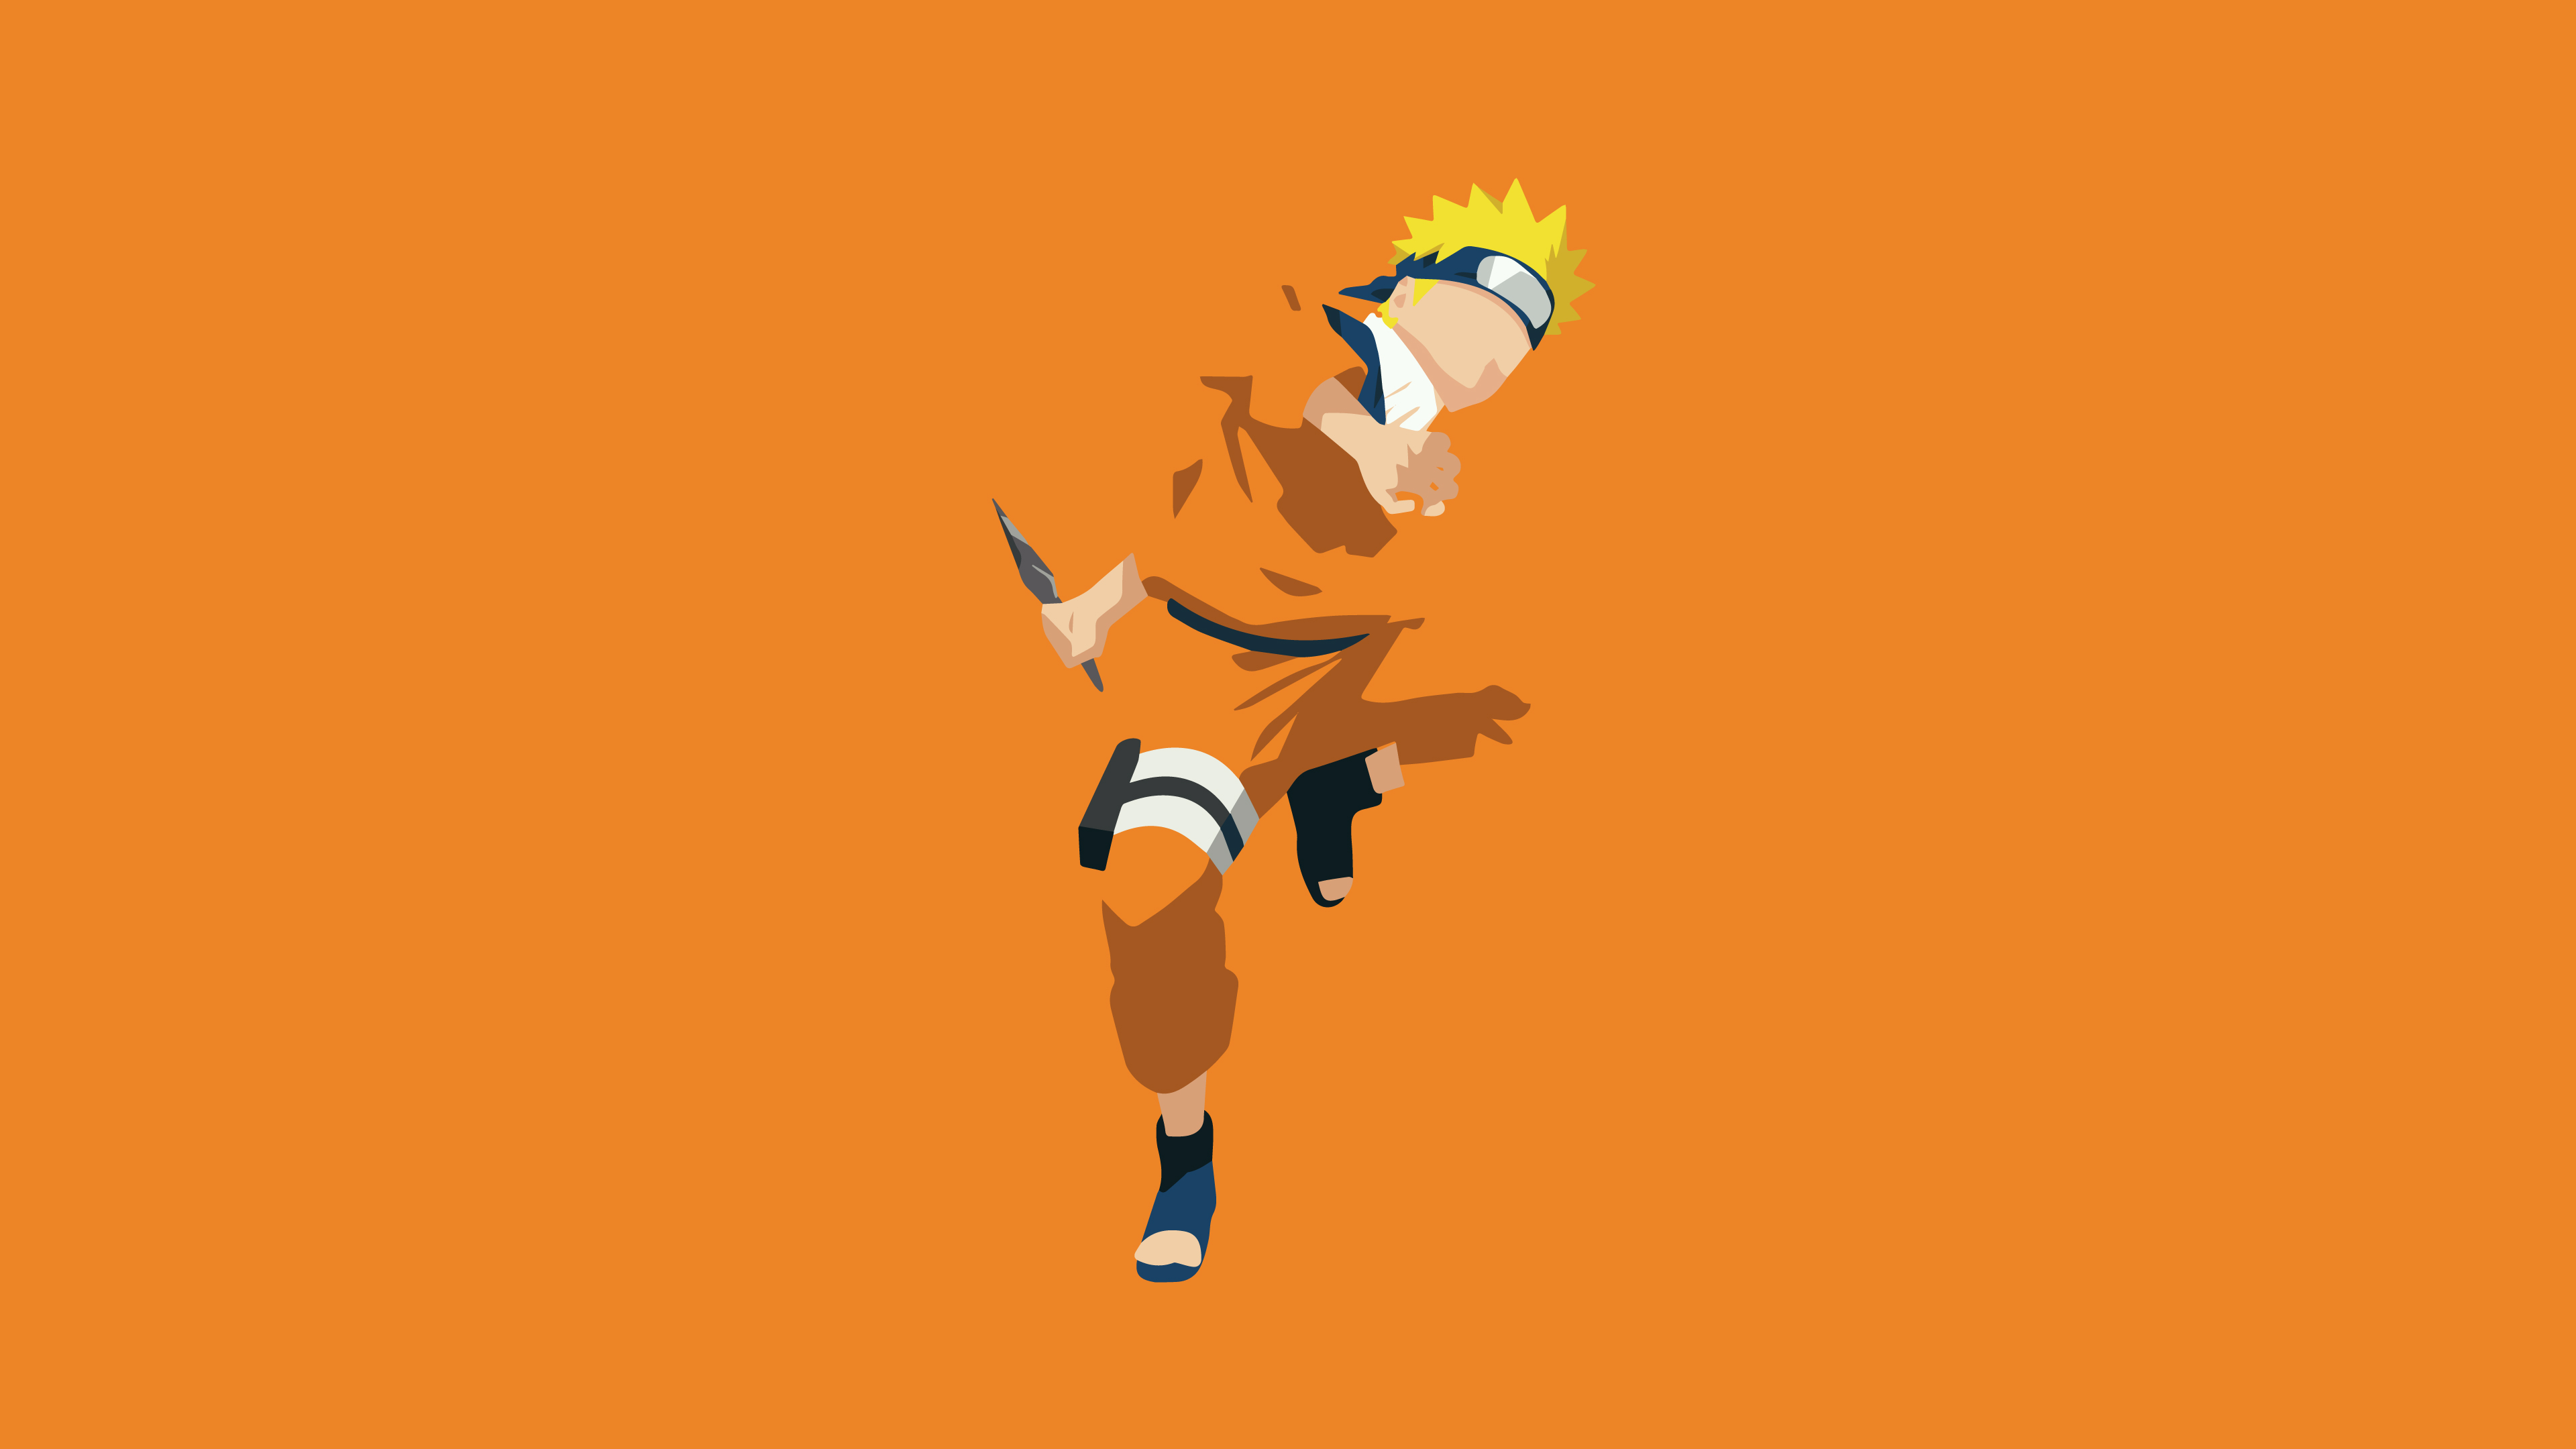 Naruto Uzumaki Minimalist Anime Wallpaper 4k Ultra HD ID3619